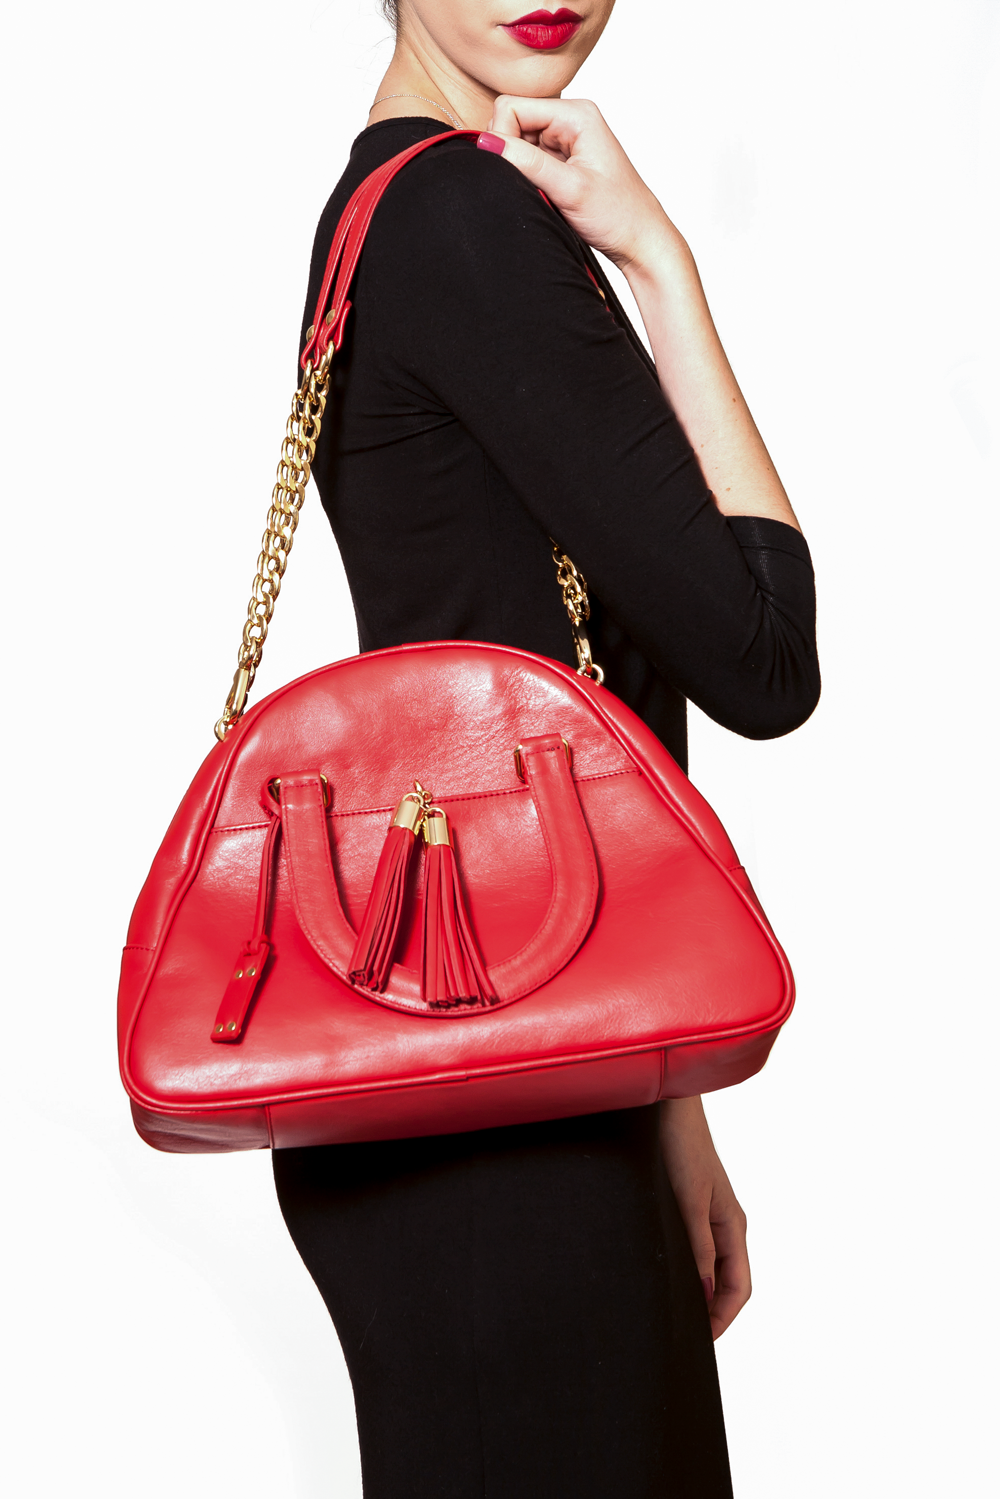 Red Smooth Leather 'Marissa' Small Tote Handbag | Mel Boteri | On Model With Shoulder Straps